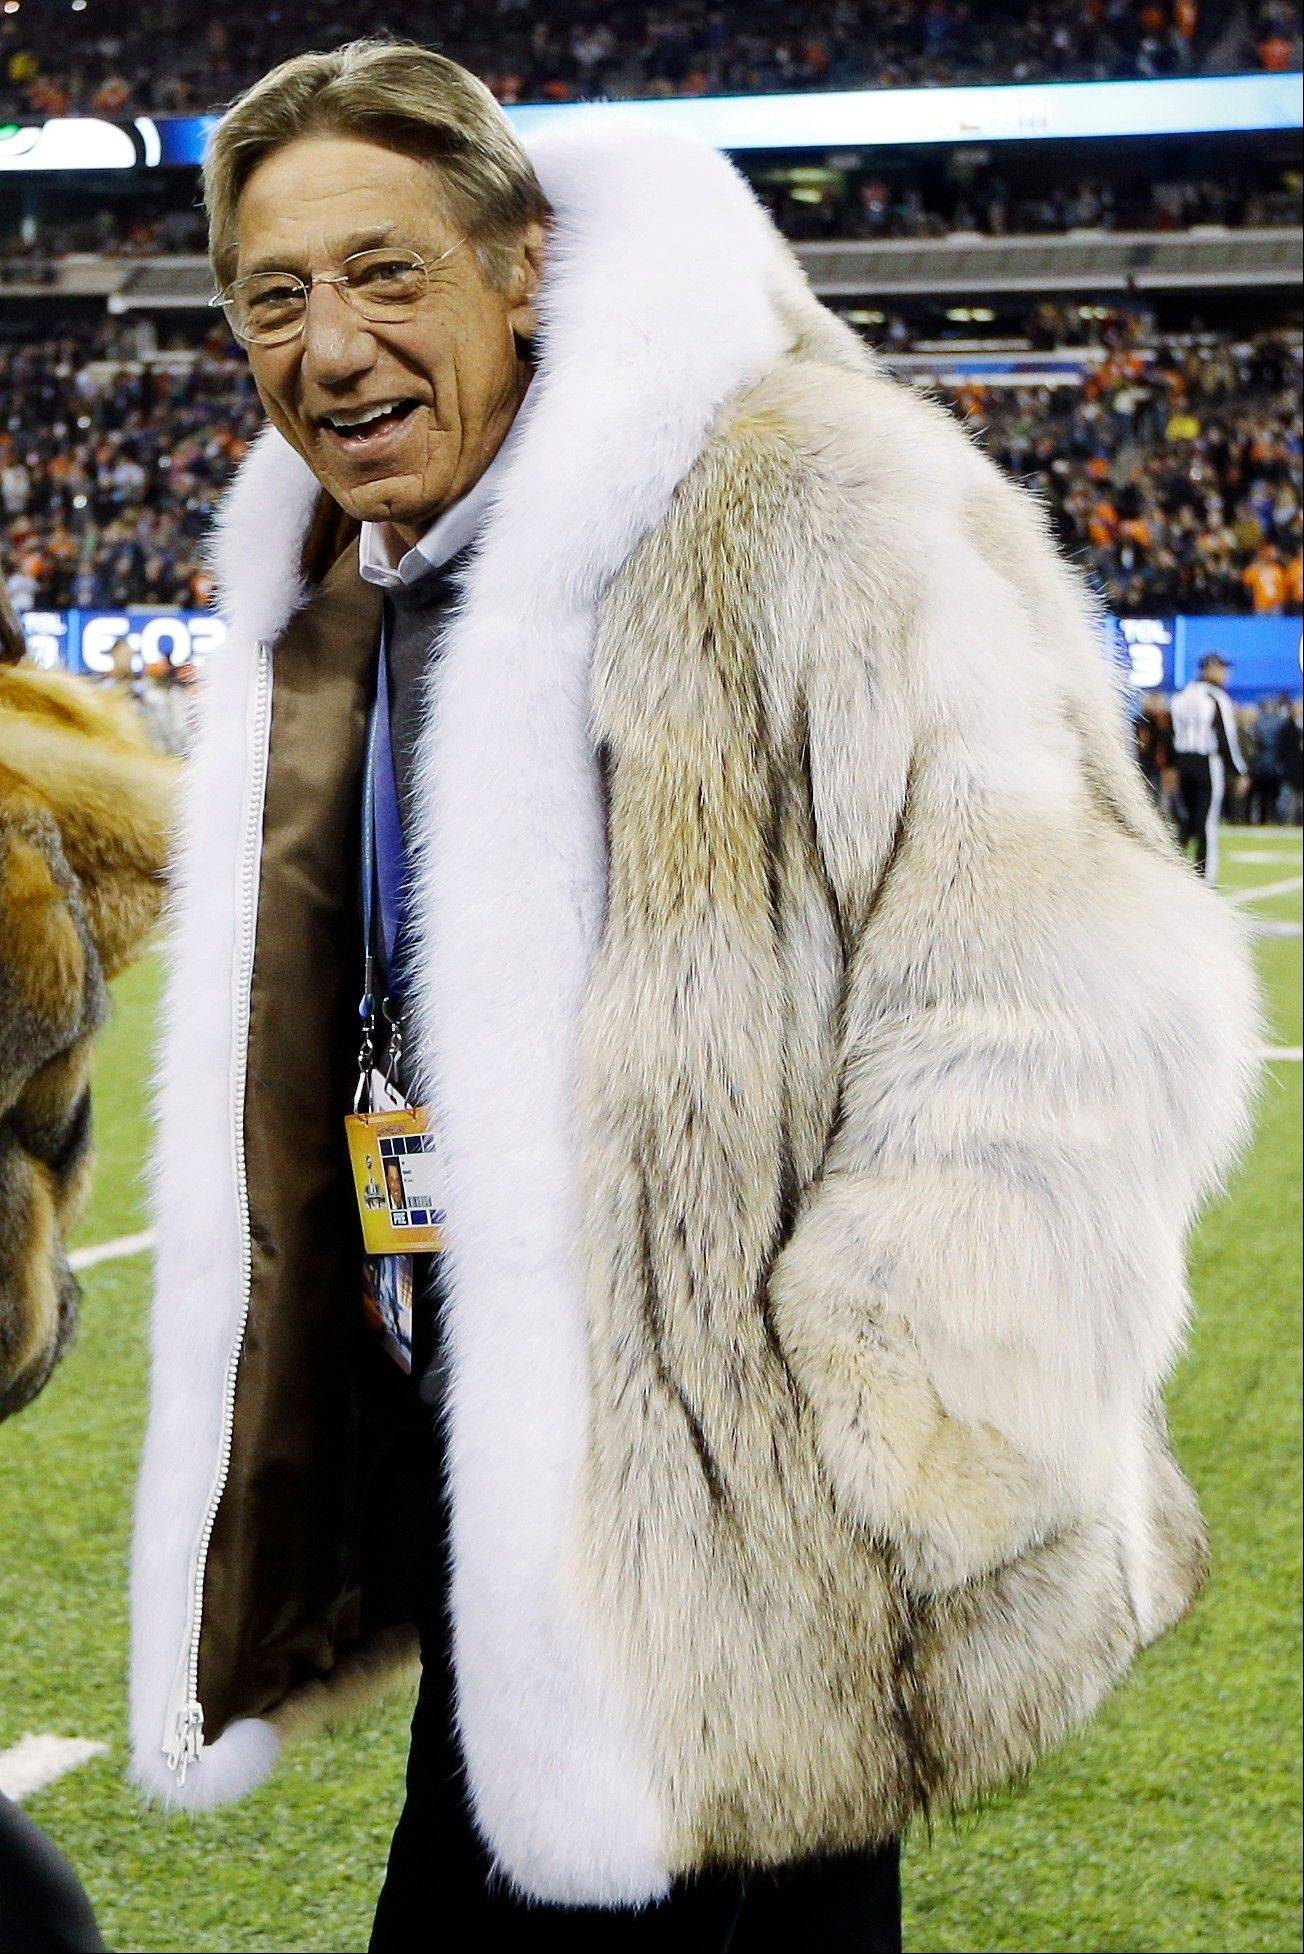 Former New York Jets quarterback Joe Namath walks on the field before the NFL Super Bowl XLVIII football game.